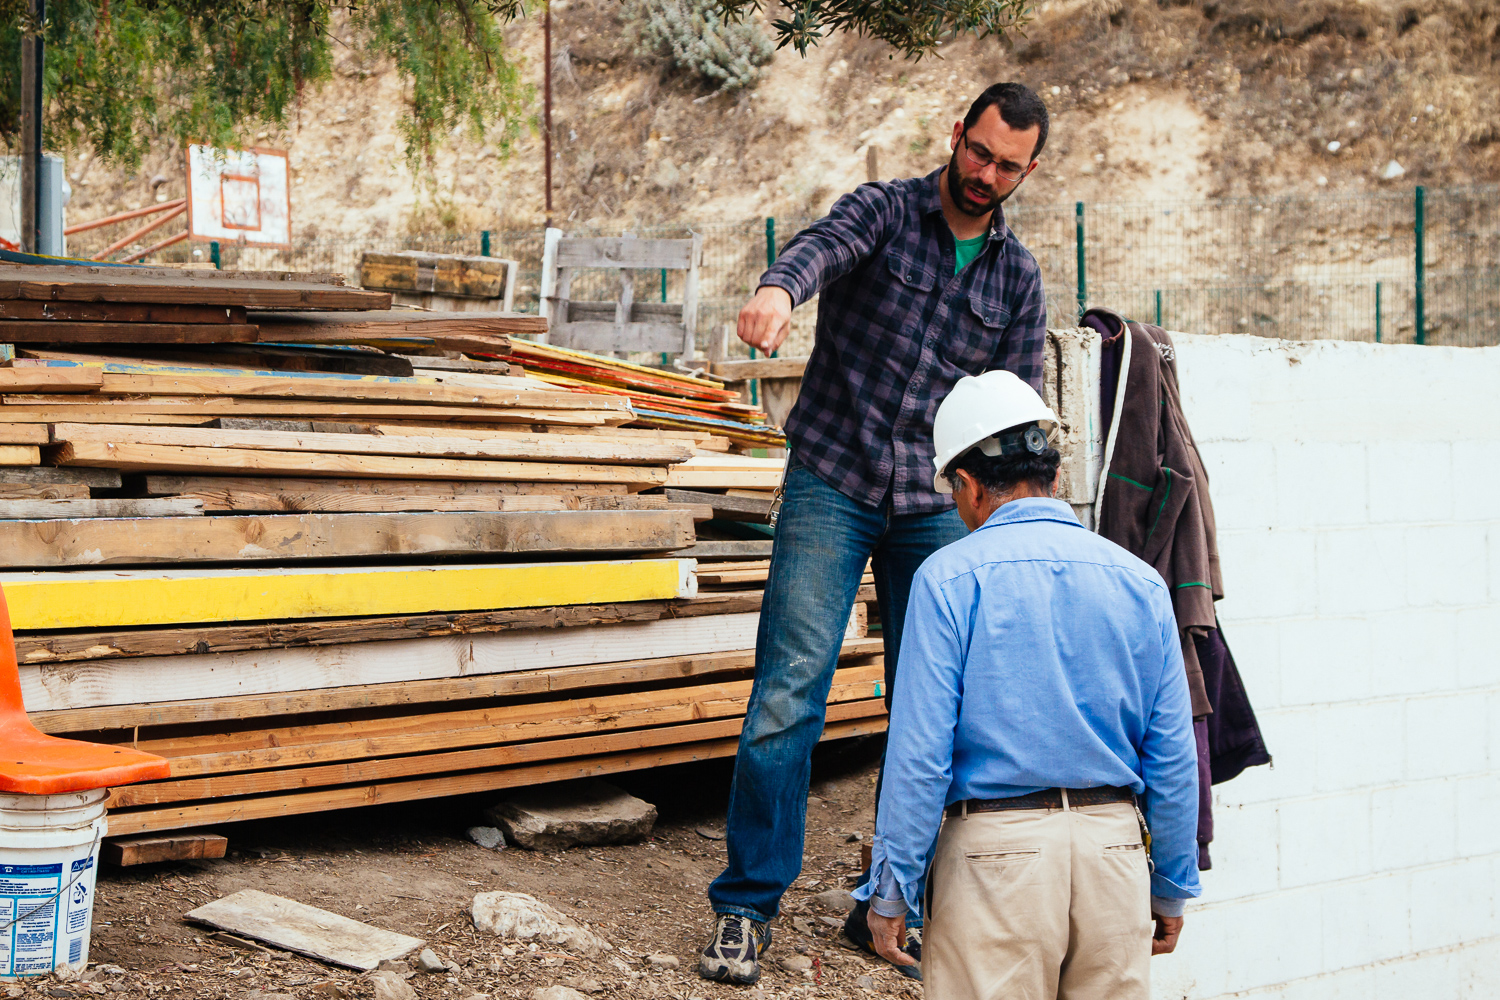 Dan engages with the community in Cañon Carretas by facilitating the construction of simple but sturdy (and colorful) homes.